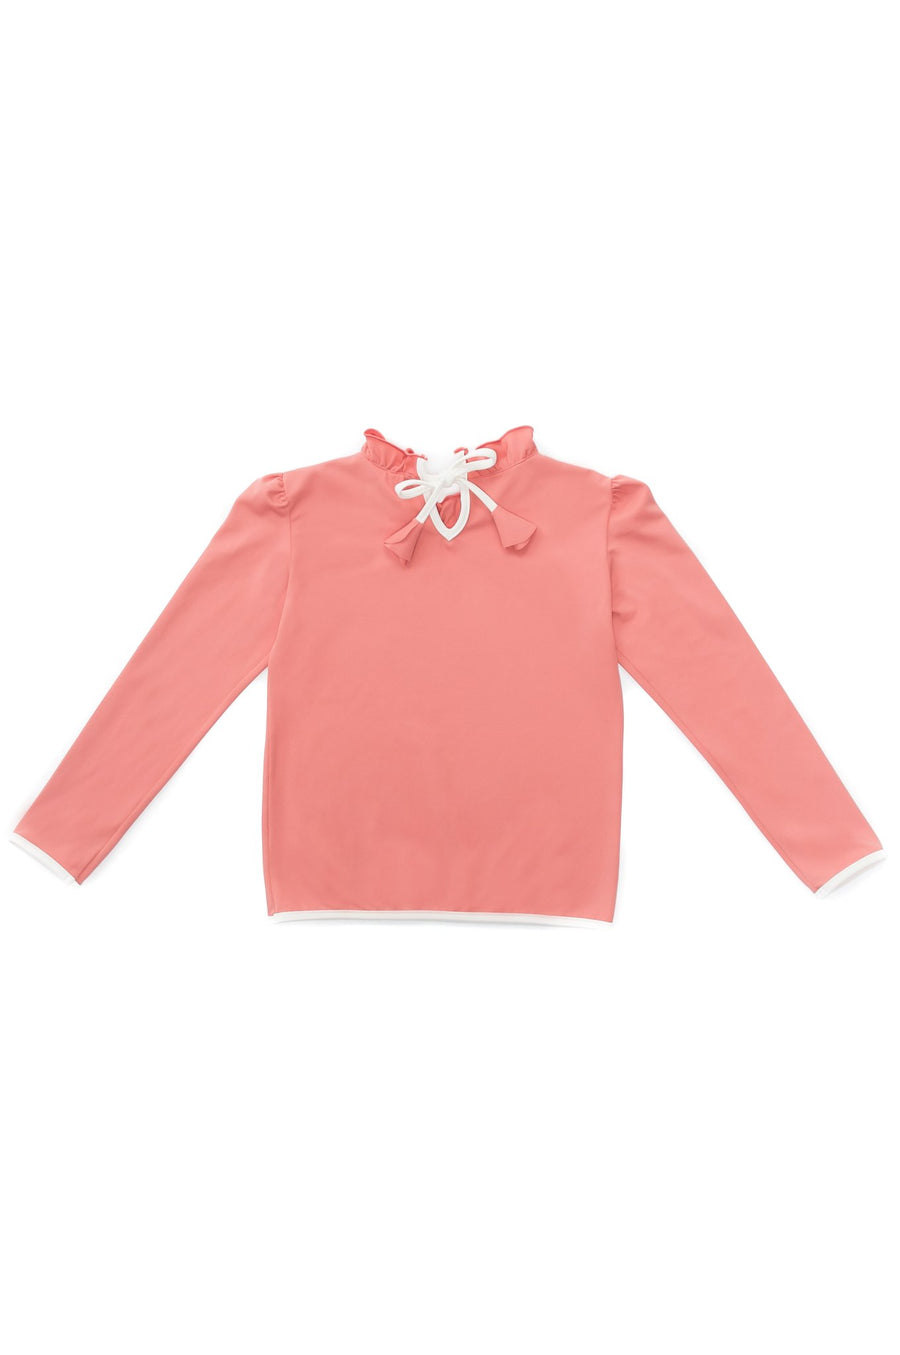 FOLPETTO - Emma Rash Guard - Coral Pink